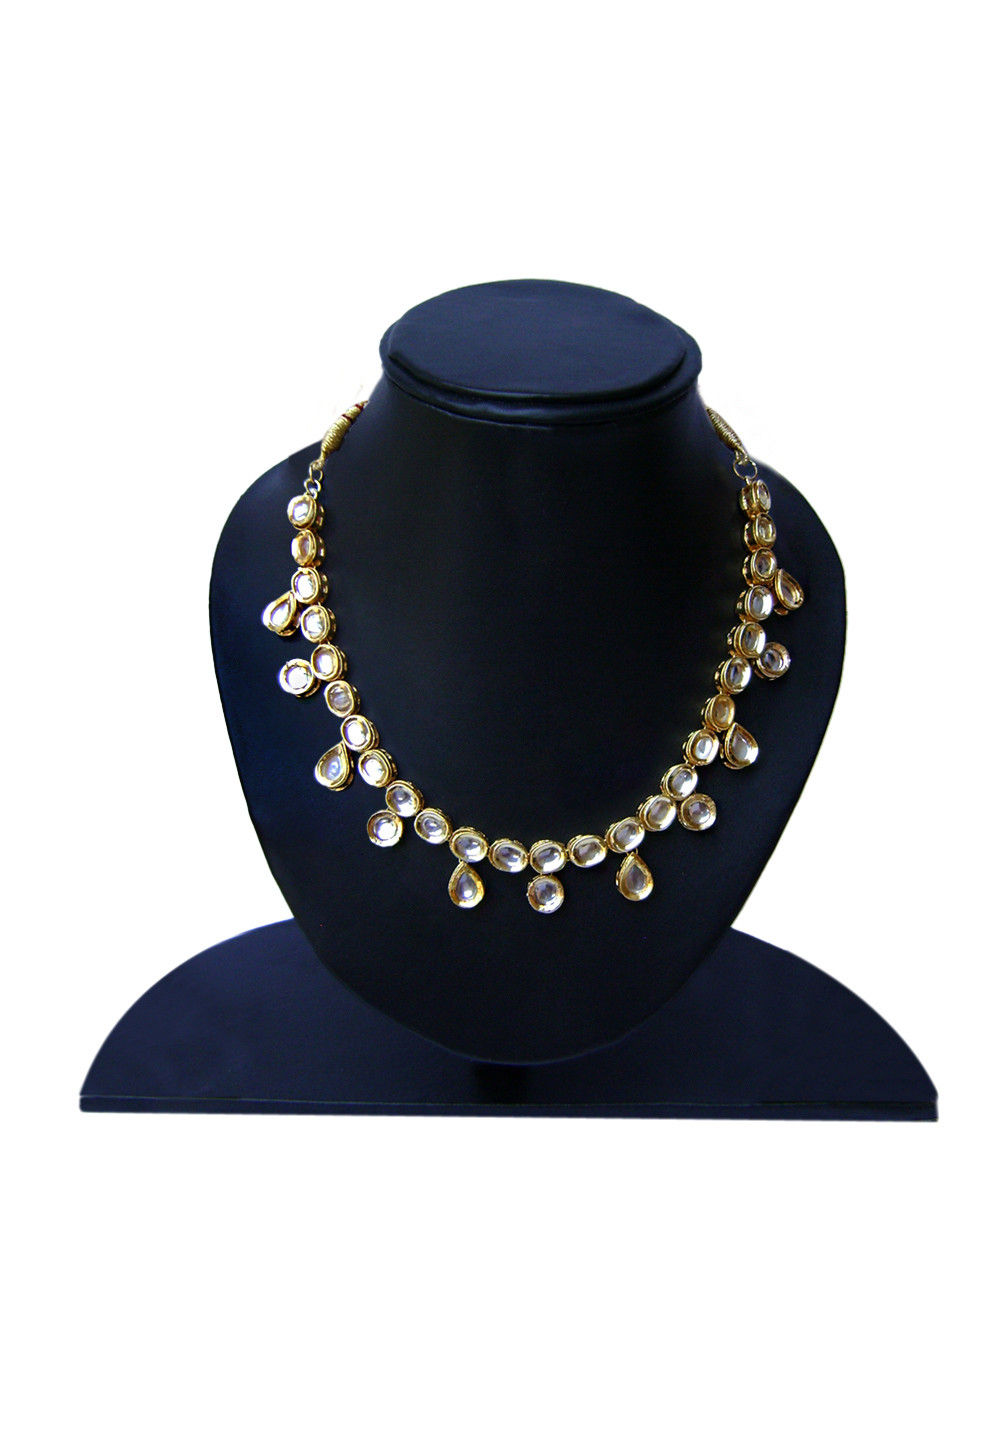 Kundan Necklace in White and Golden